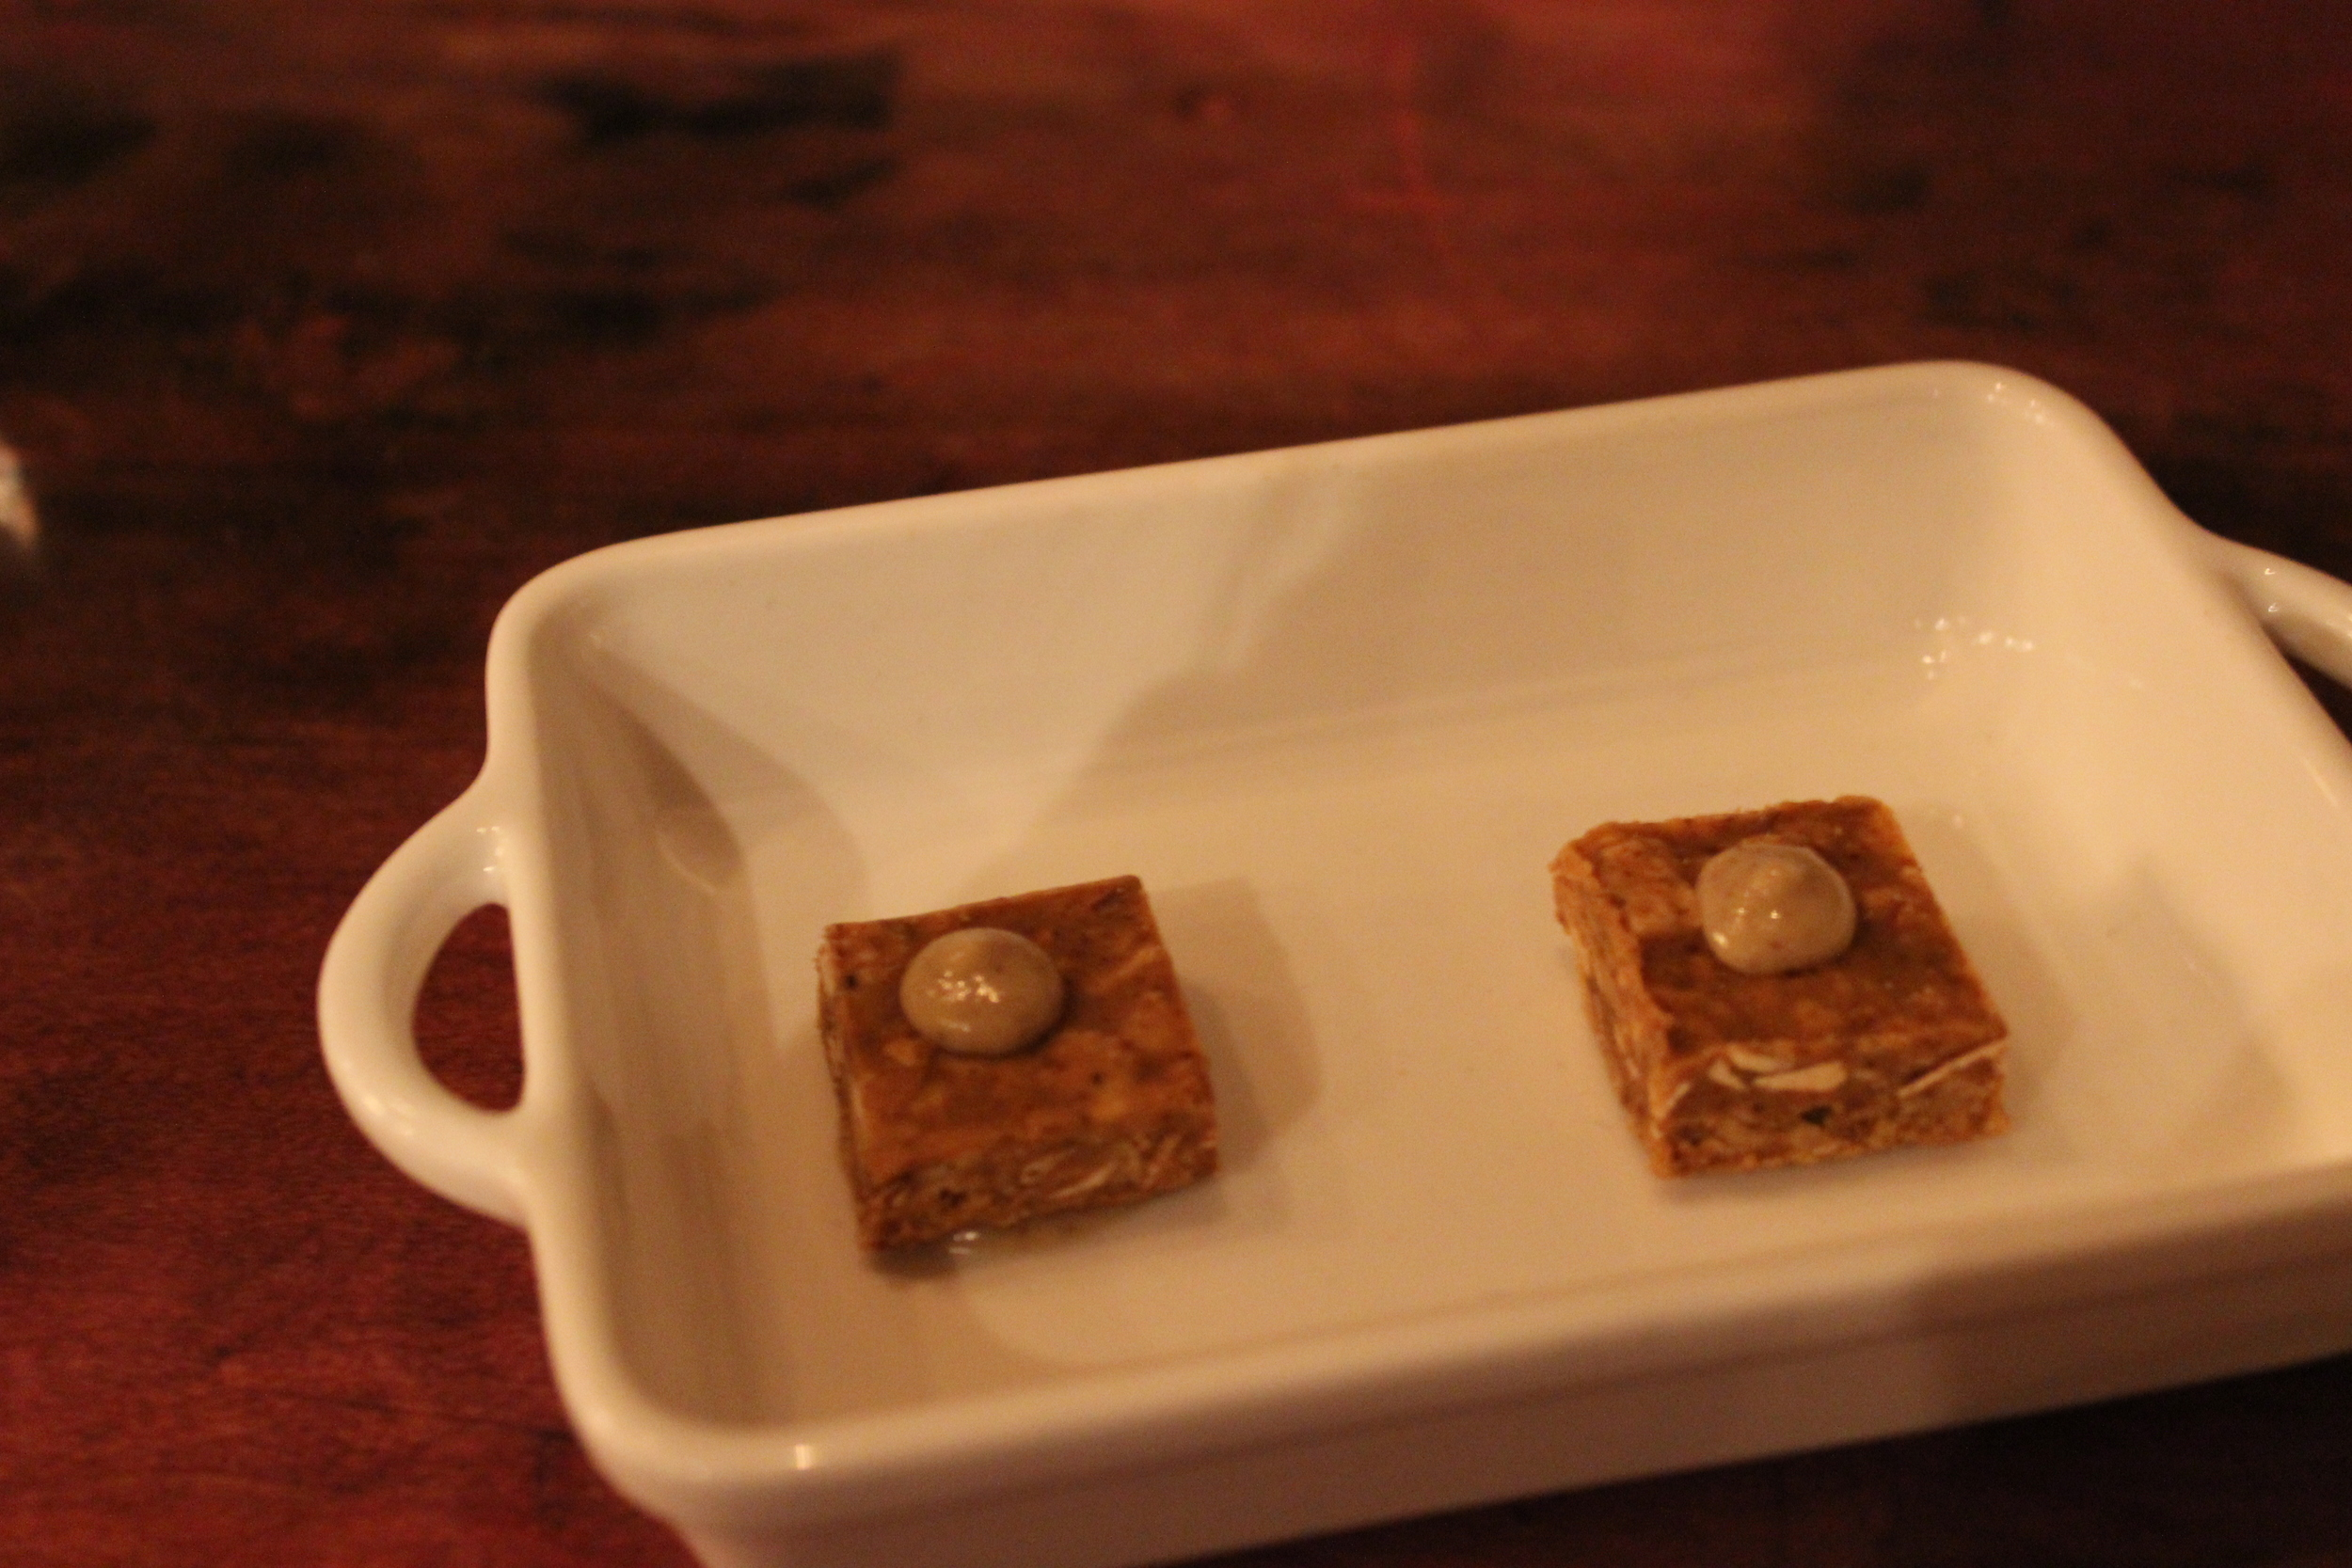 Course 13: Almond Brittle